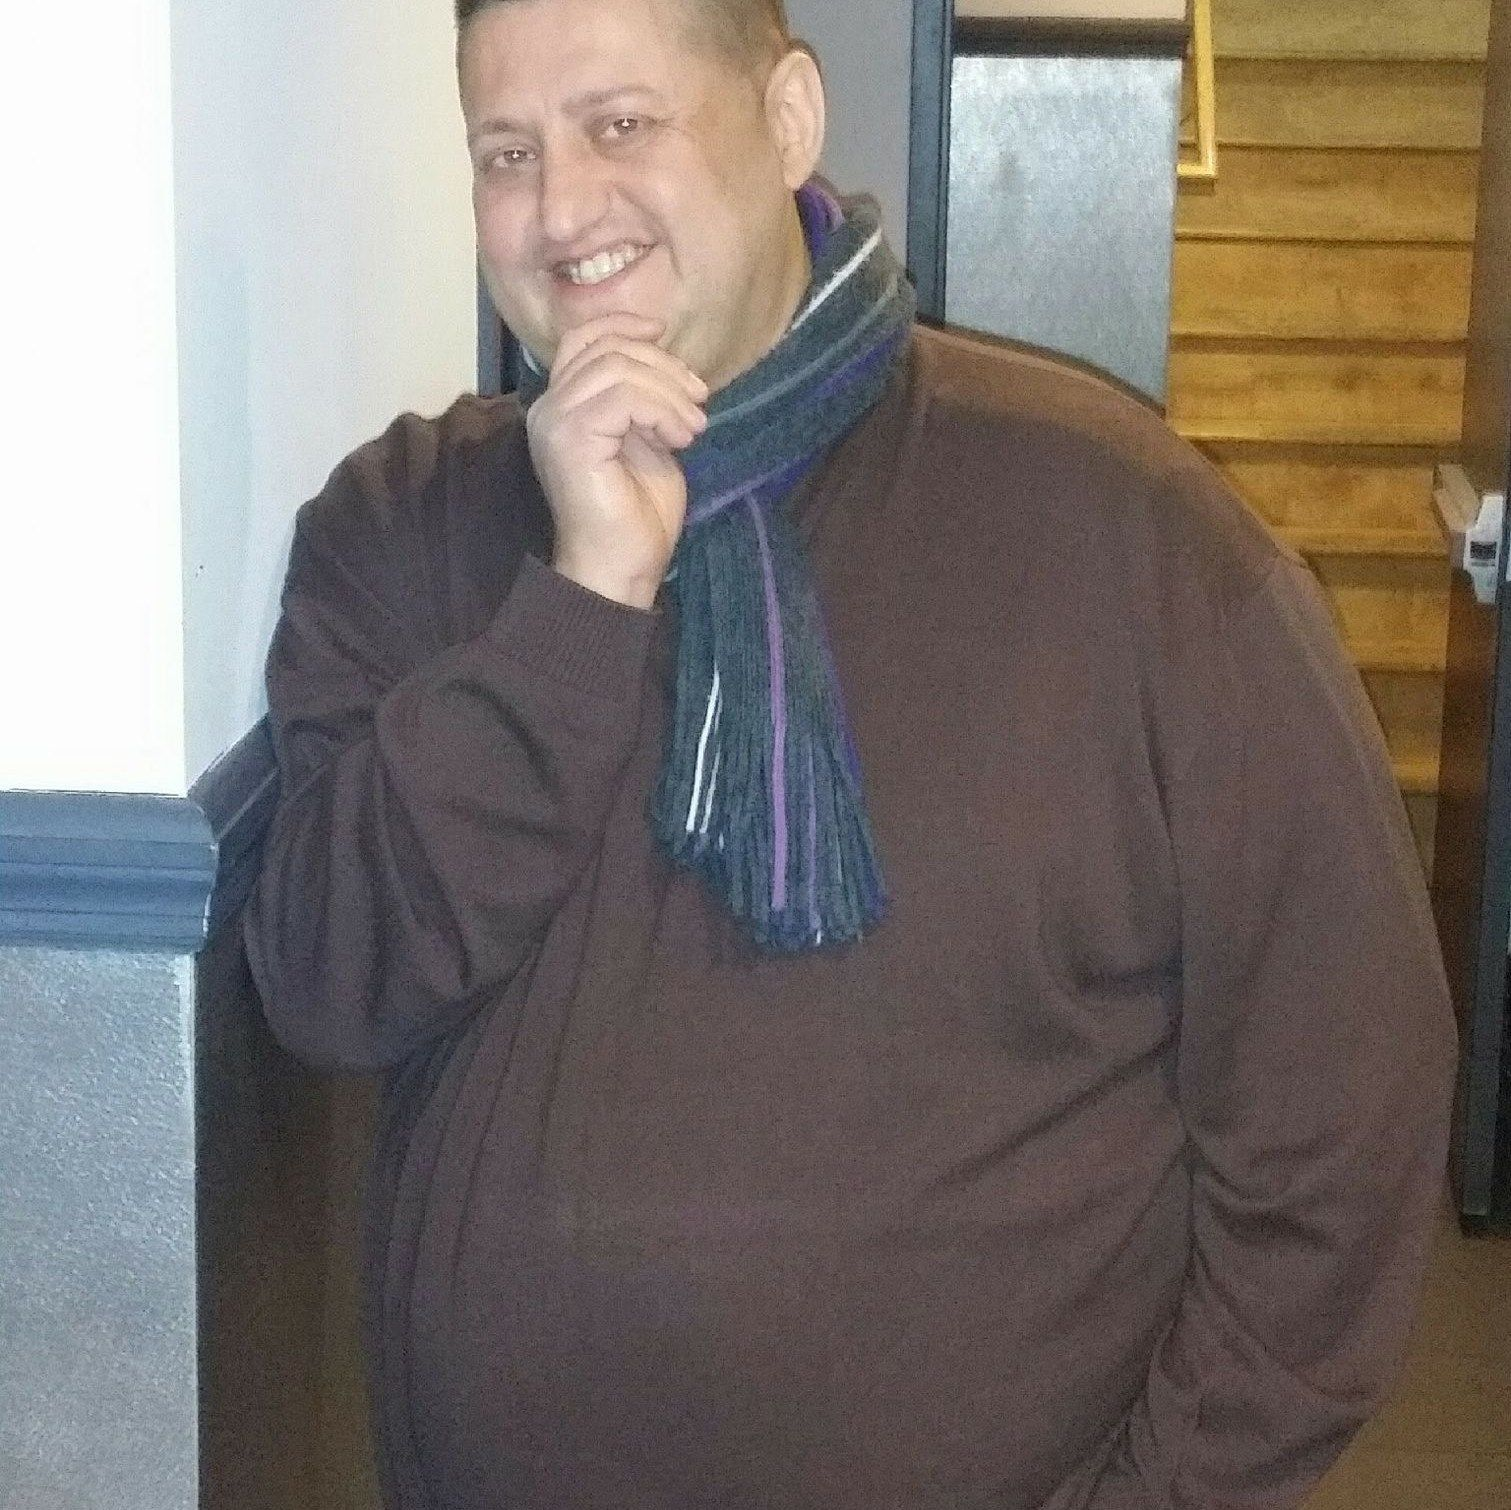 astoria hispanic singles Search for local senior singles in new york online dating brings singles together who may never otherwise meet  latino / hispanic.